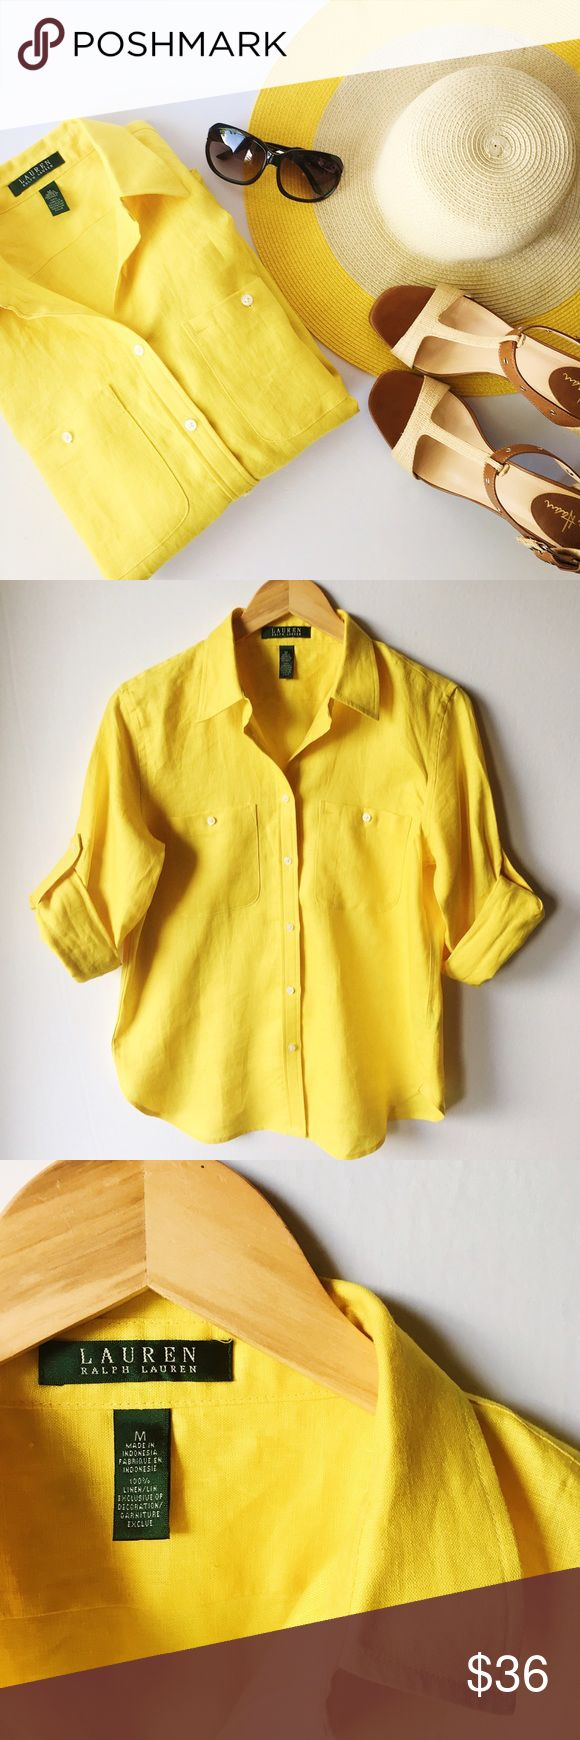 "LAUREN RALPH LAUREN Classic Linen Roll-Cuff Shirt Bright yellow 100% linen will go with everything and define classic summer like nothing else in your wardrobe. This airy linen shirt is an effortless, affordable style essential.  - EUC. Gently worn only a few times - 100% Linen - 2 Front Pockets with Buttons - Long sleeves with button barrel cuffs - Cuffs roll to the elbow and secure with button ups - Shirttail hem - Machine Washable - Measurements:  Length - 27""  Bust - 20"" across…"